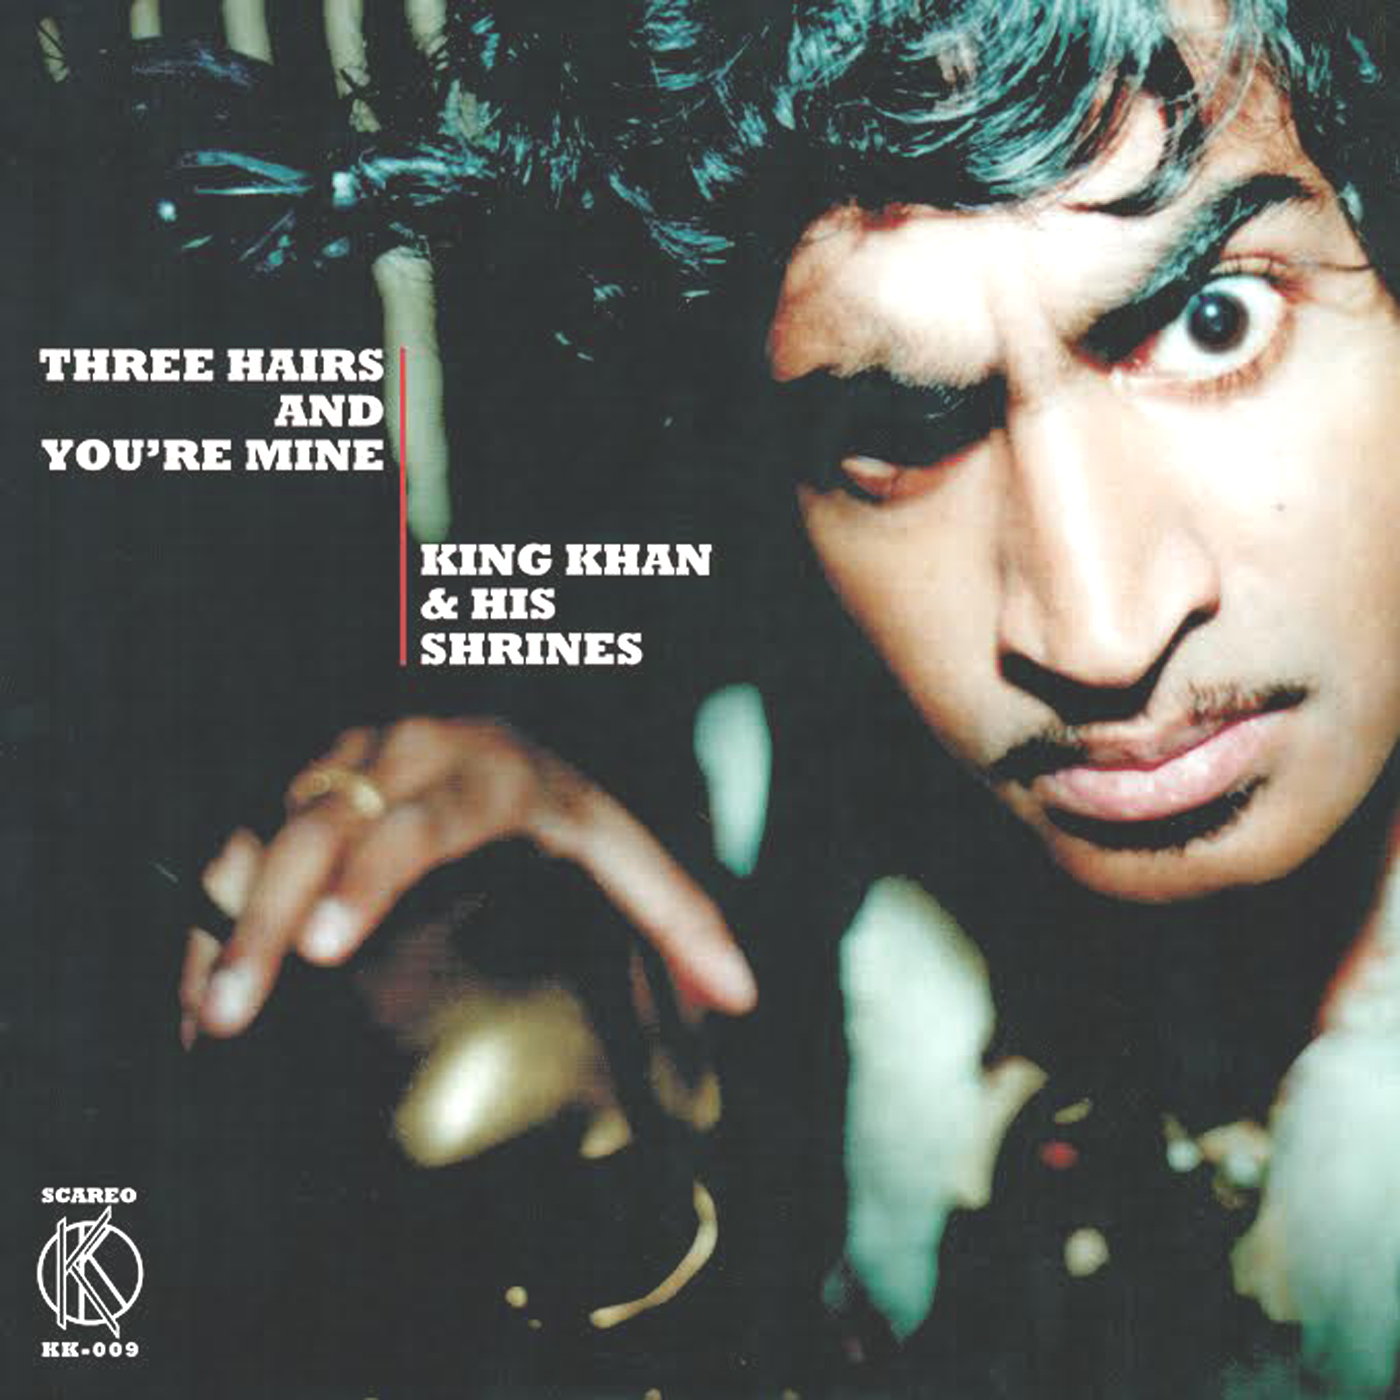 King Khan & The Shrines - Three Hairs And You're Mine